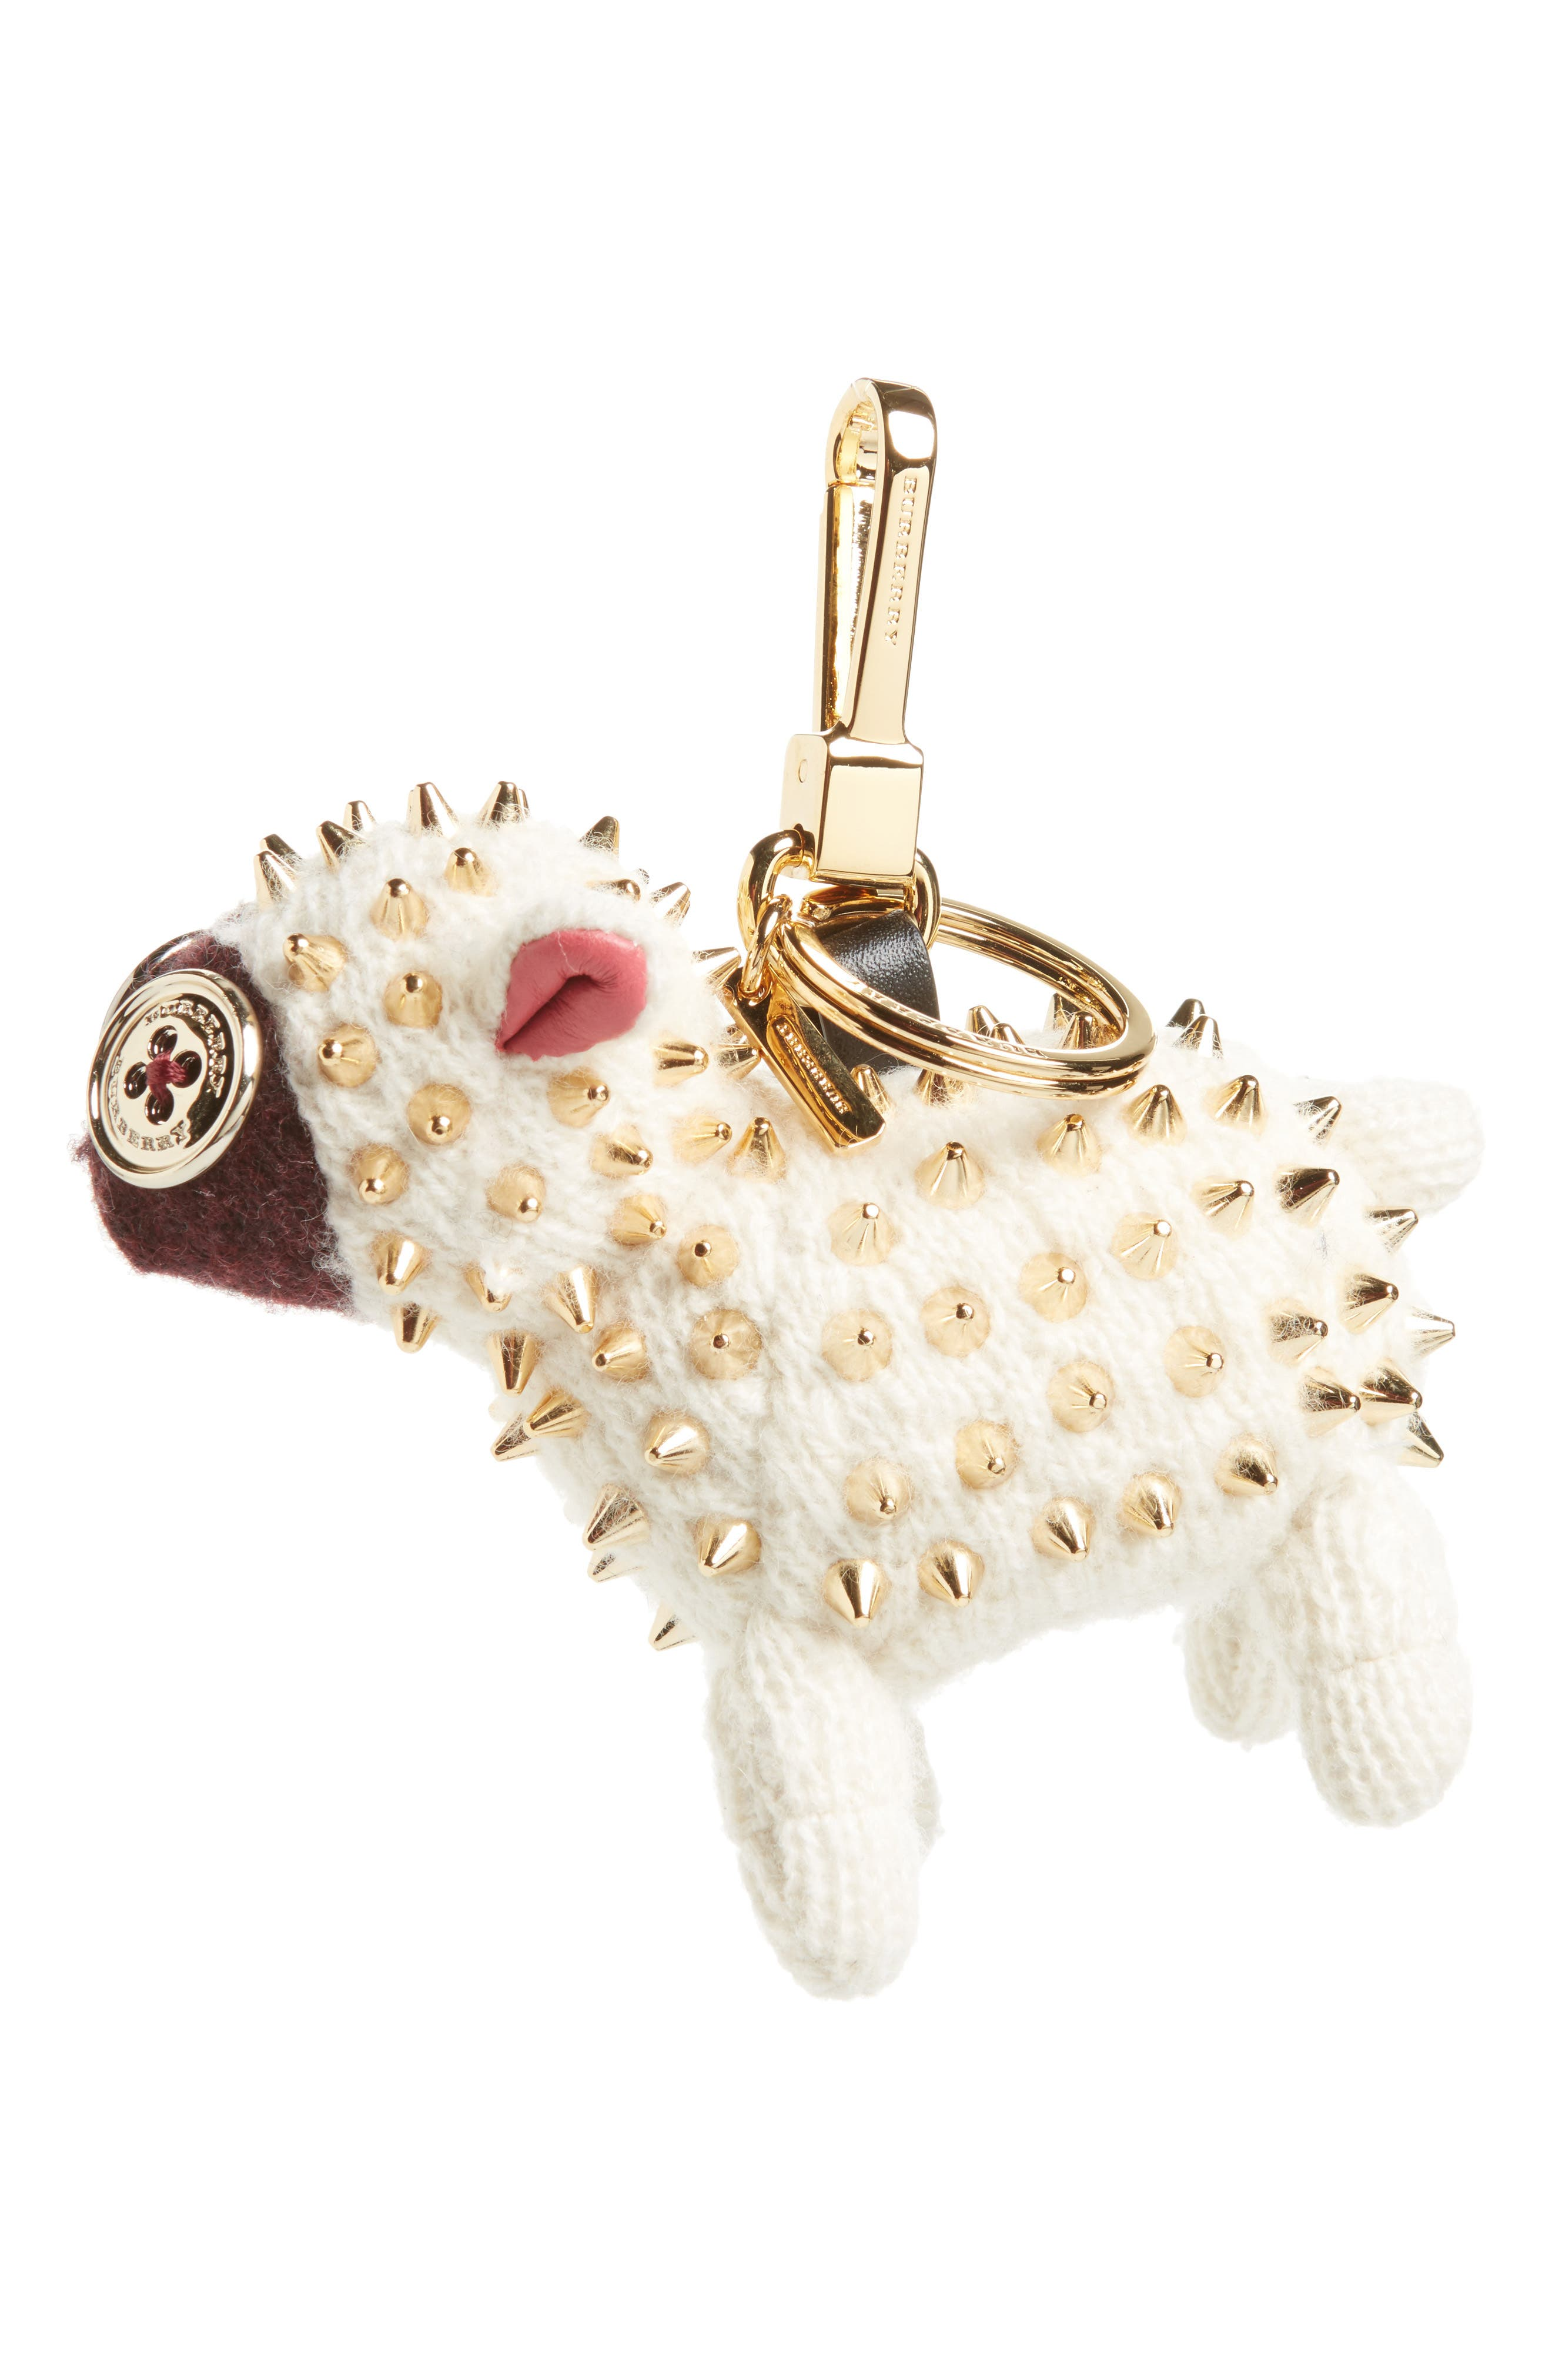 Wendy the Sheep Studded Cashmere Bag Charm,                         Main,                         color, White Multi